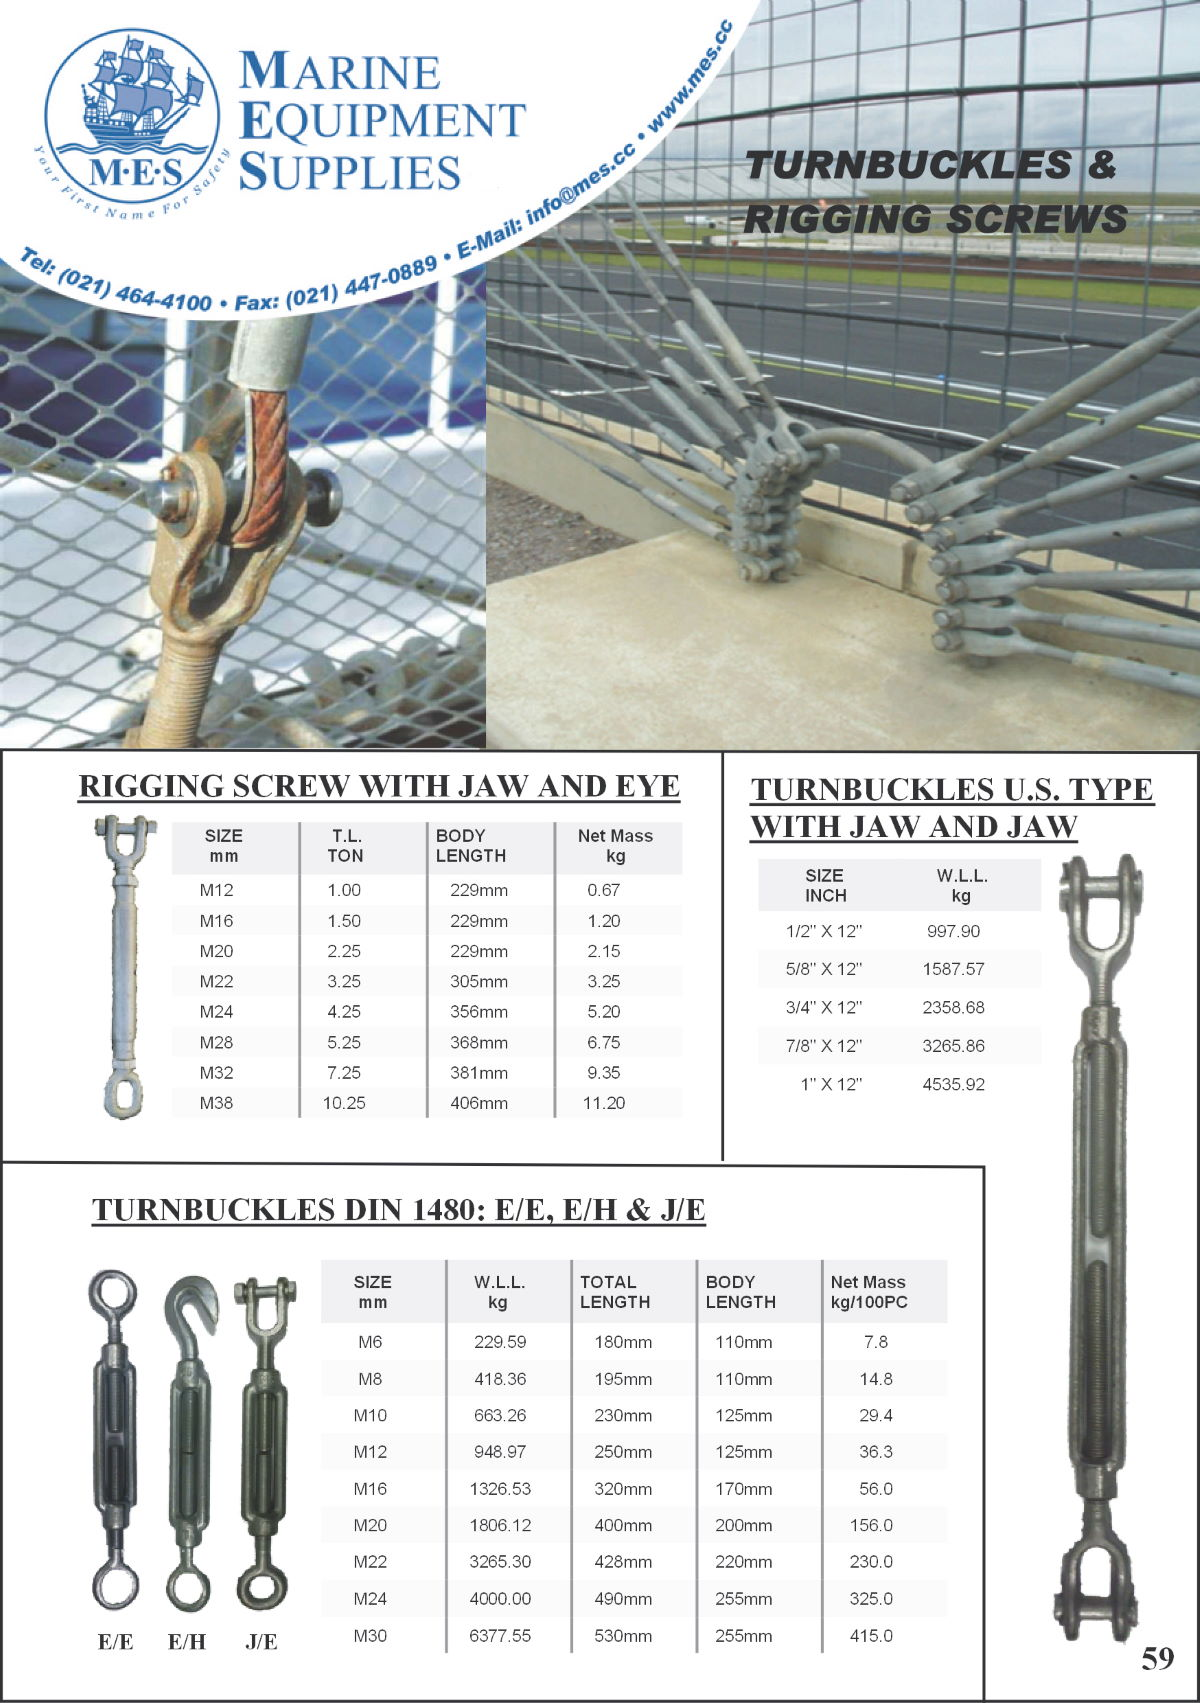 Marine Turnbuckles & Rigging Screws